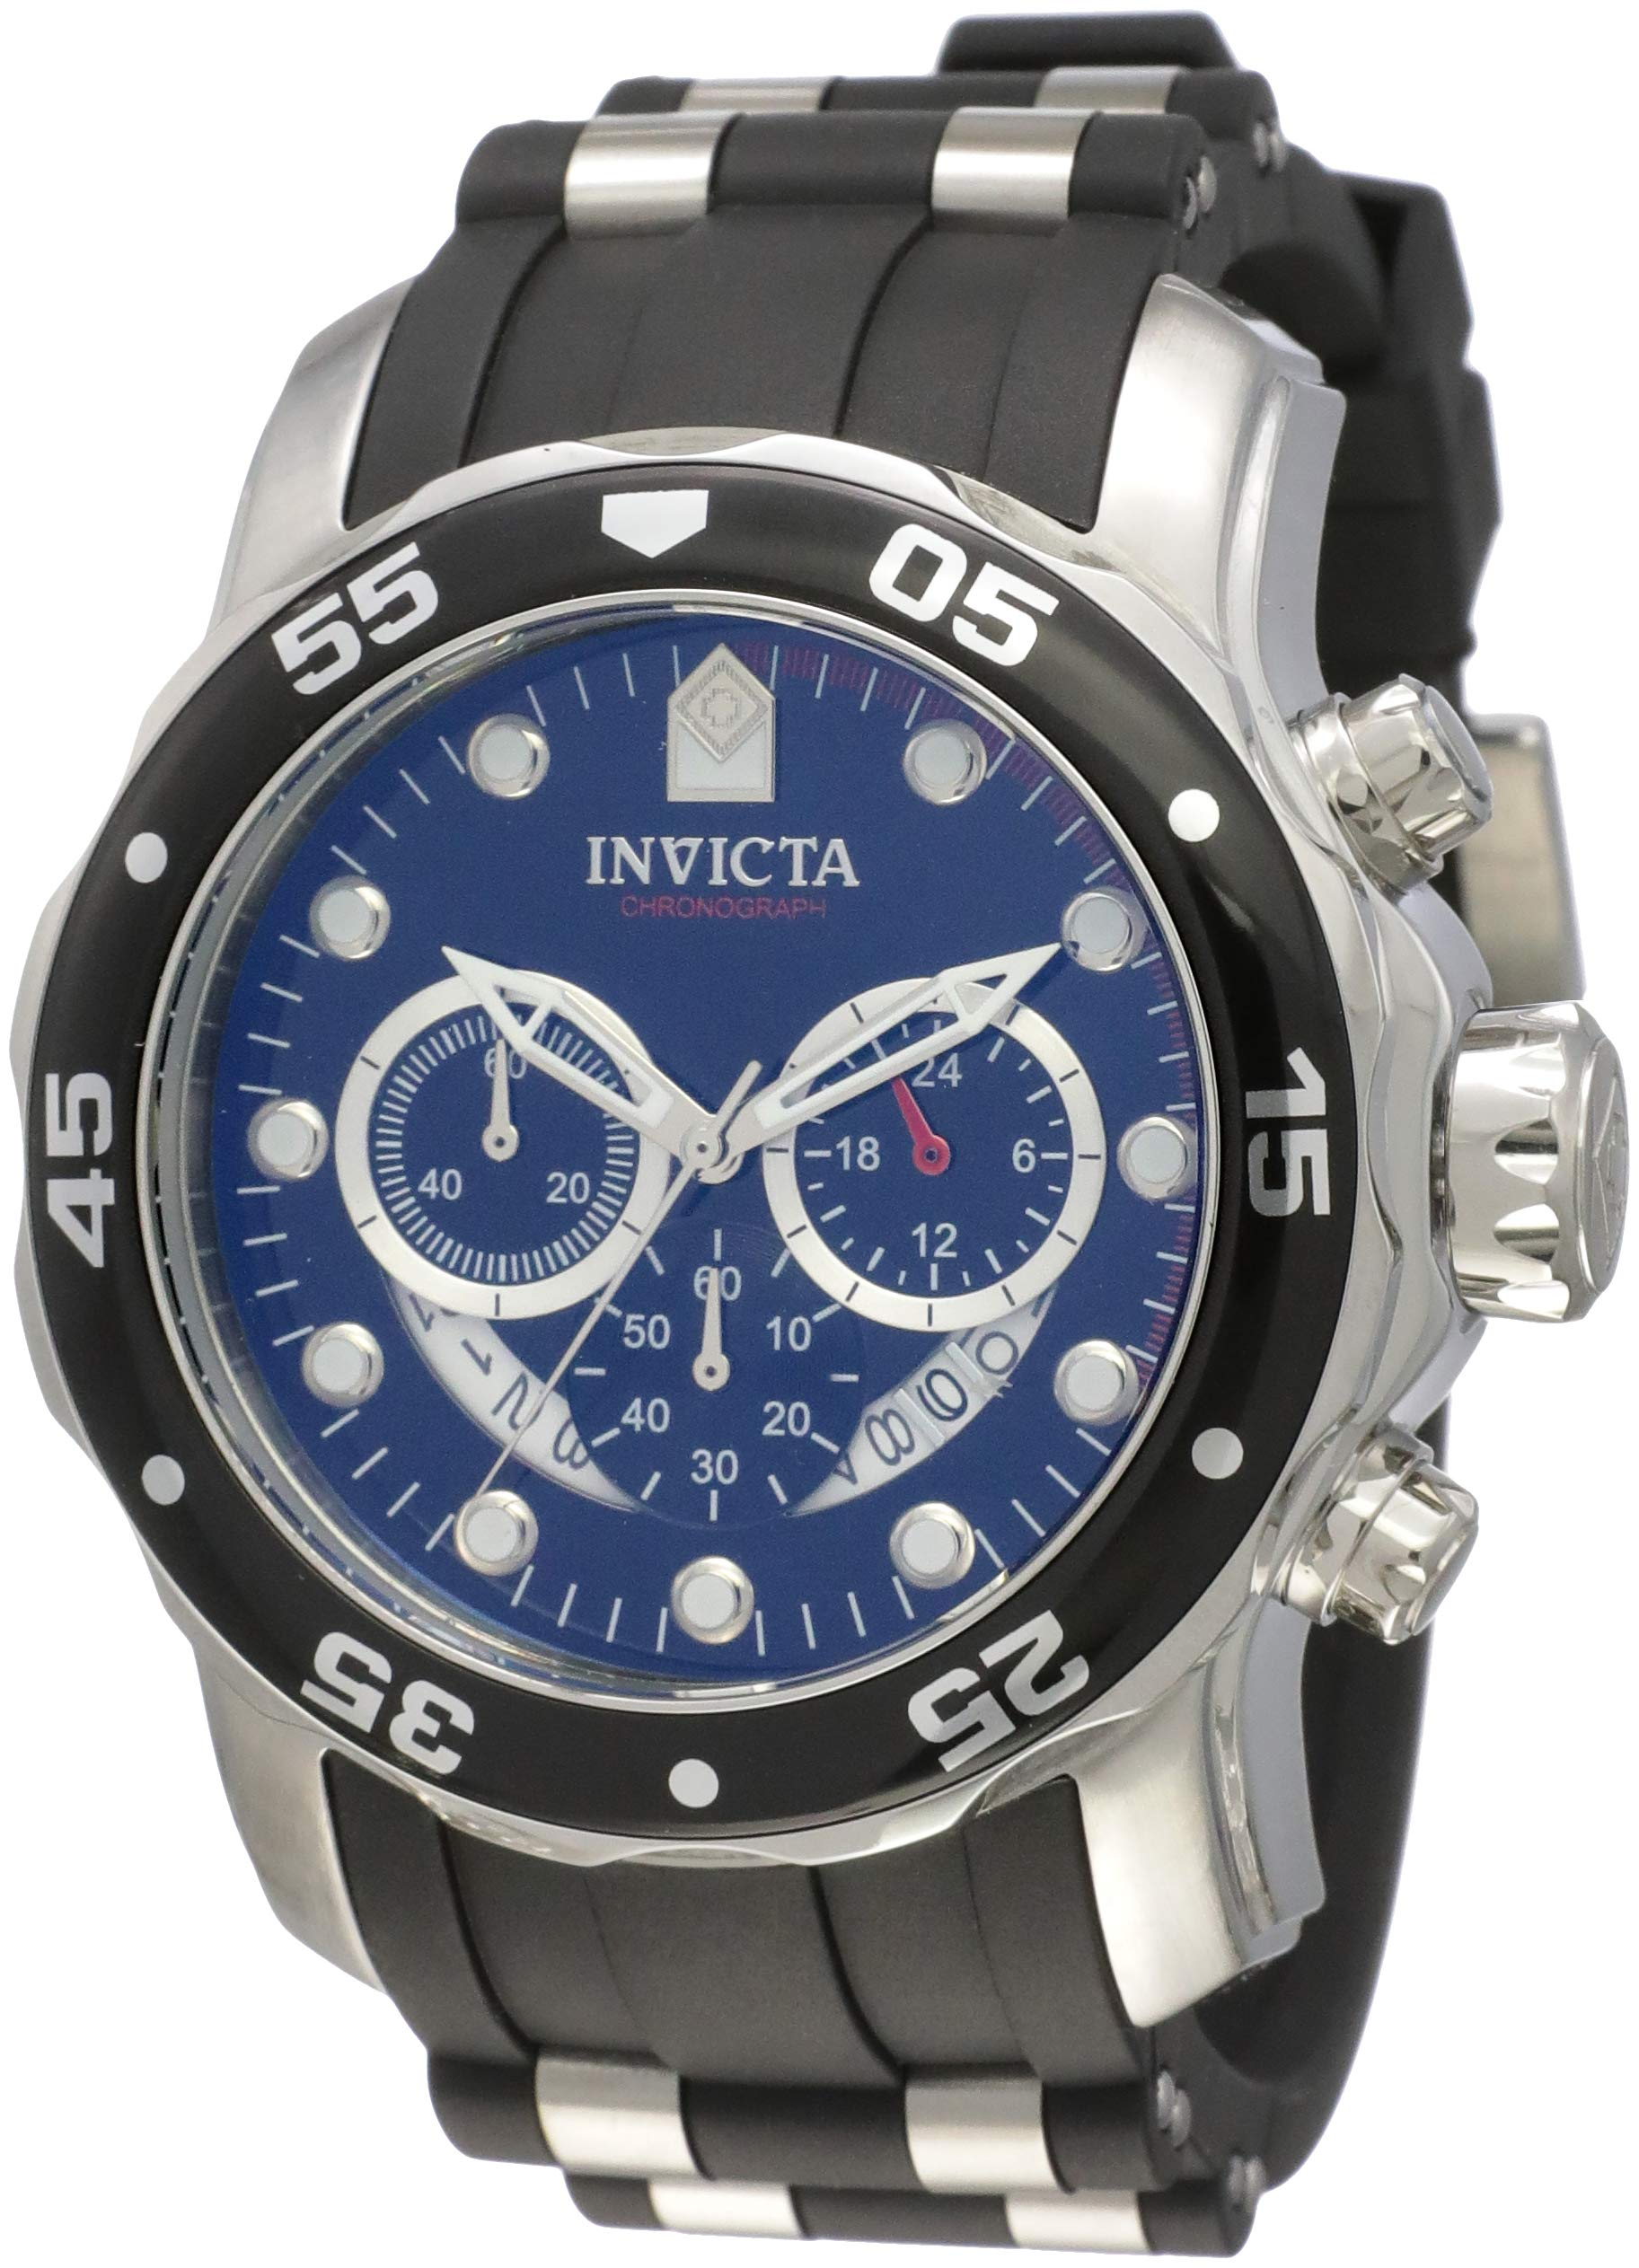 Invicta Men's 6977 Pro Diver Collection Stainless Steel Watch by Invicta